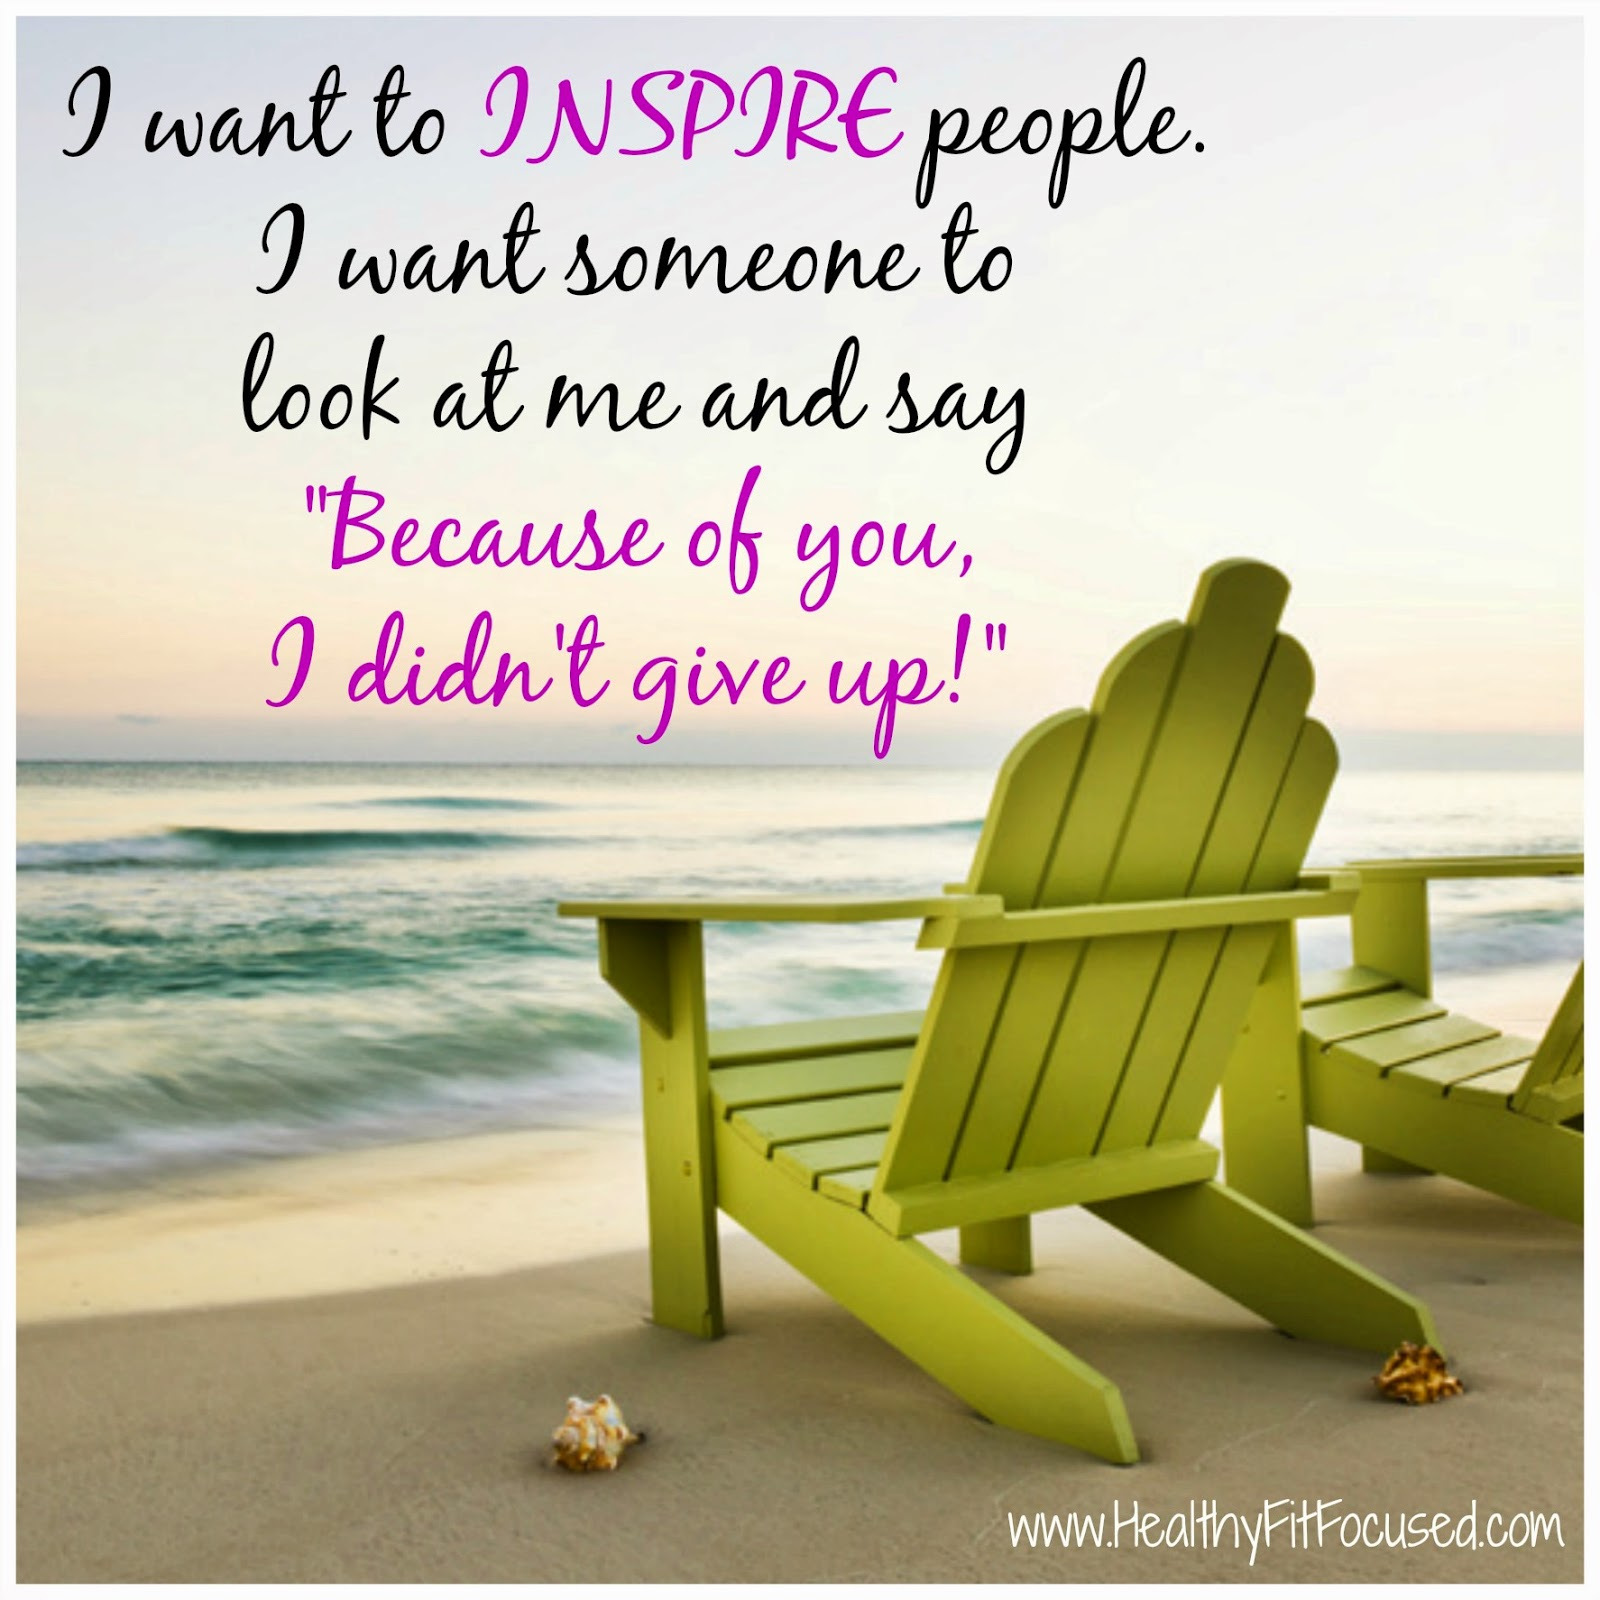 Beachbody Coaching, Mentor, Accountability, Change lives, I want to inspire others